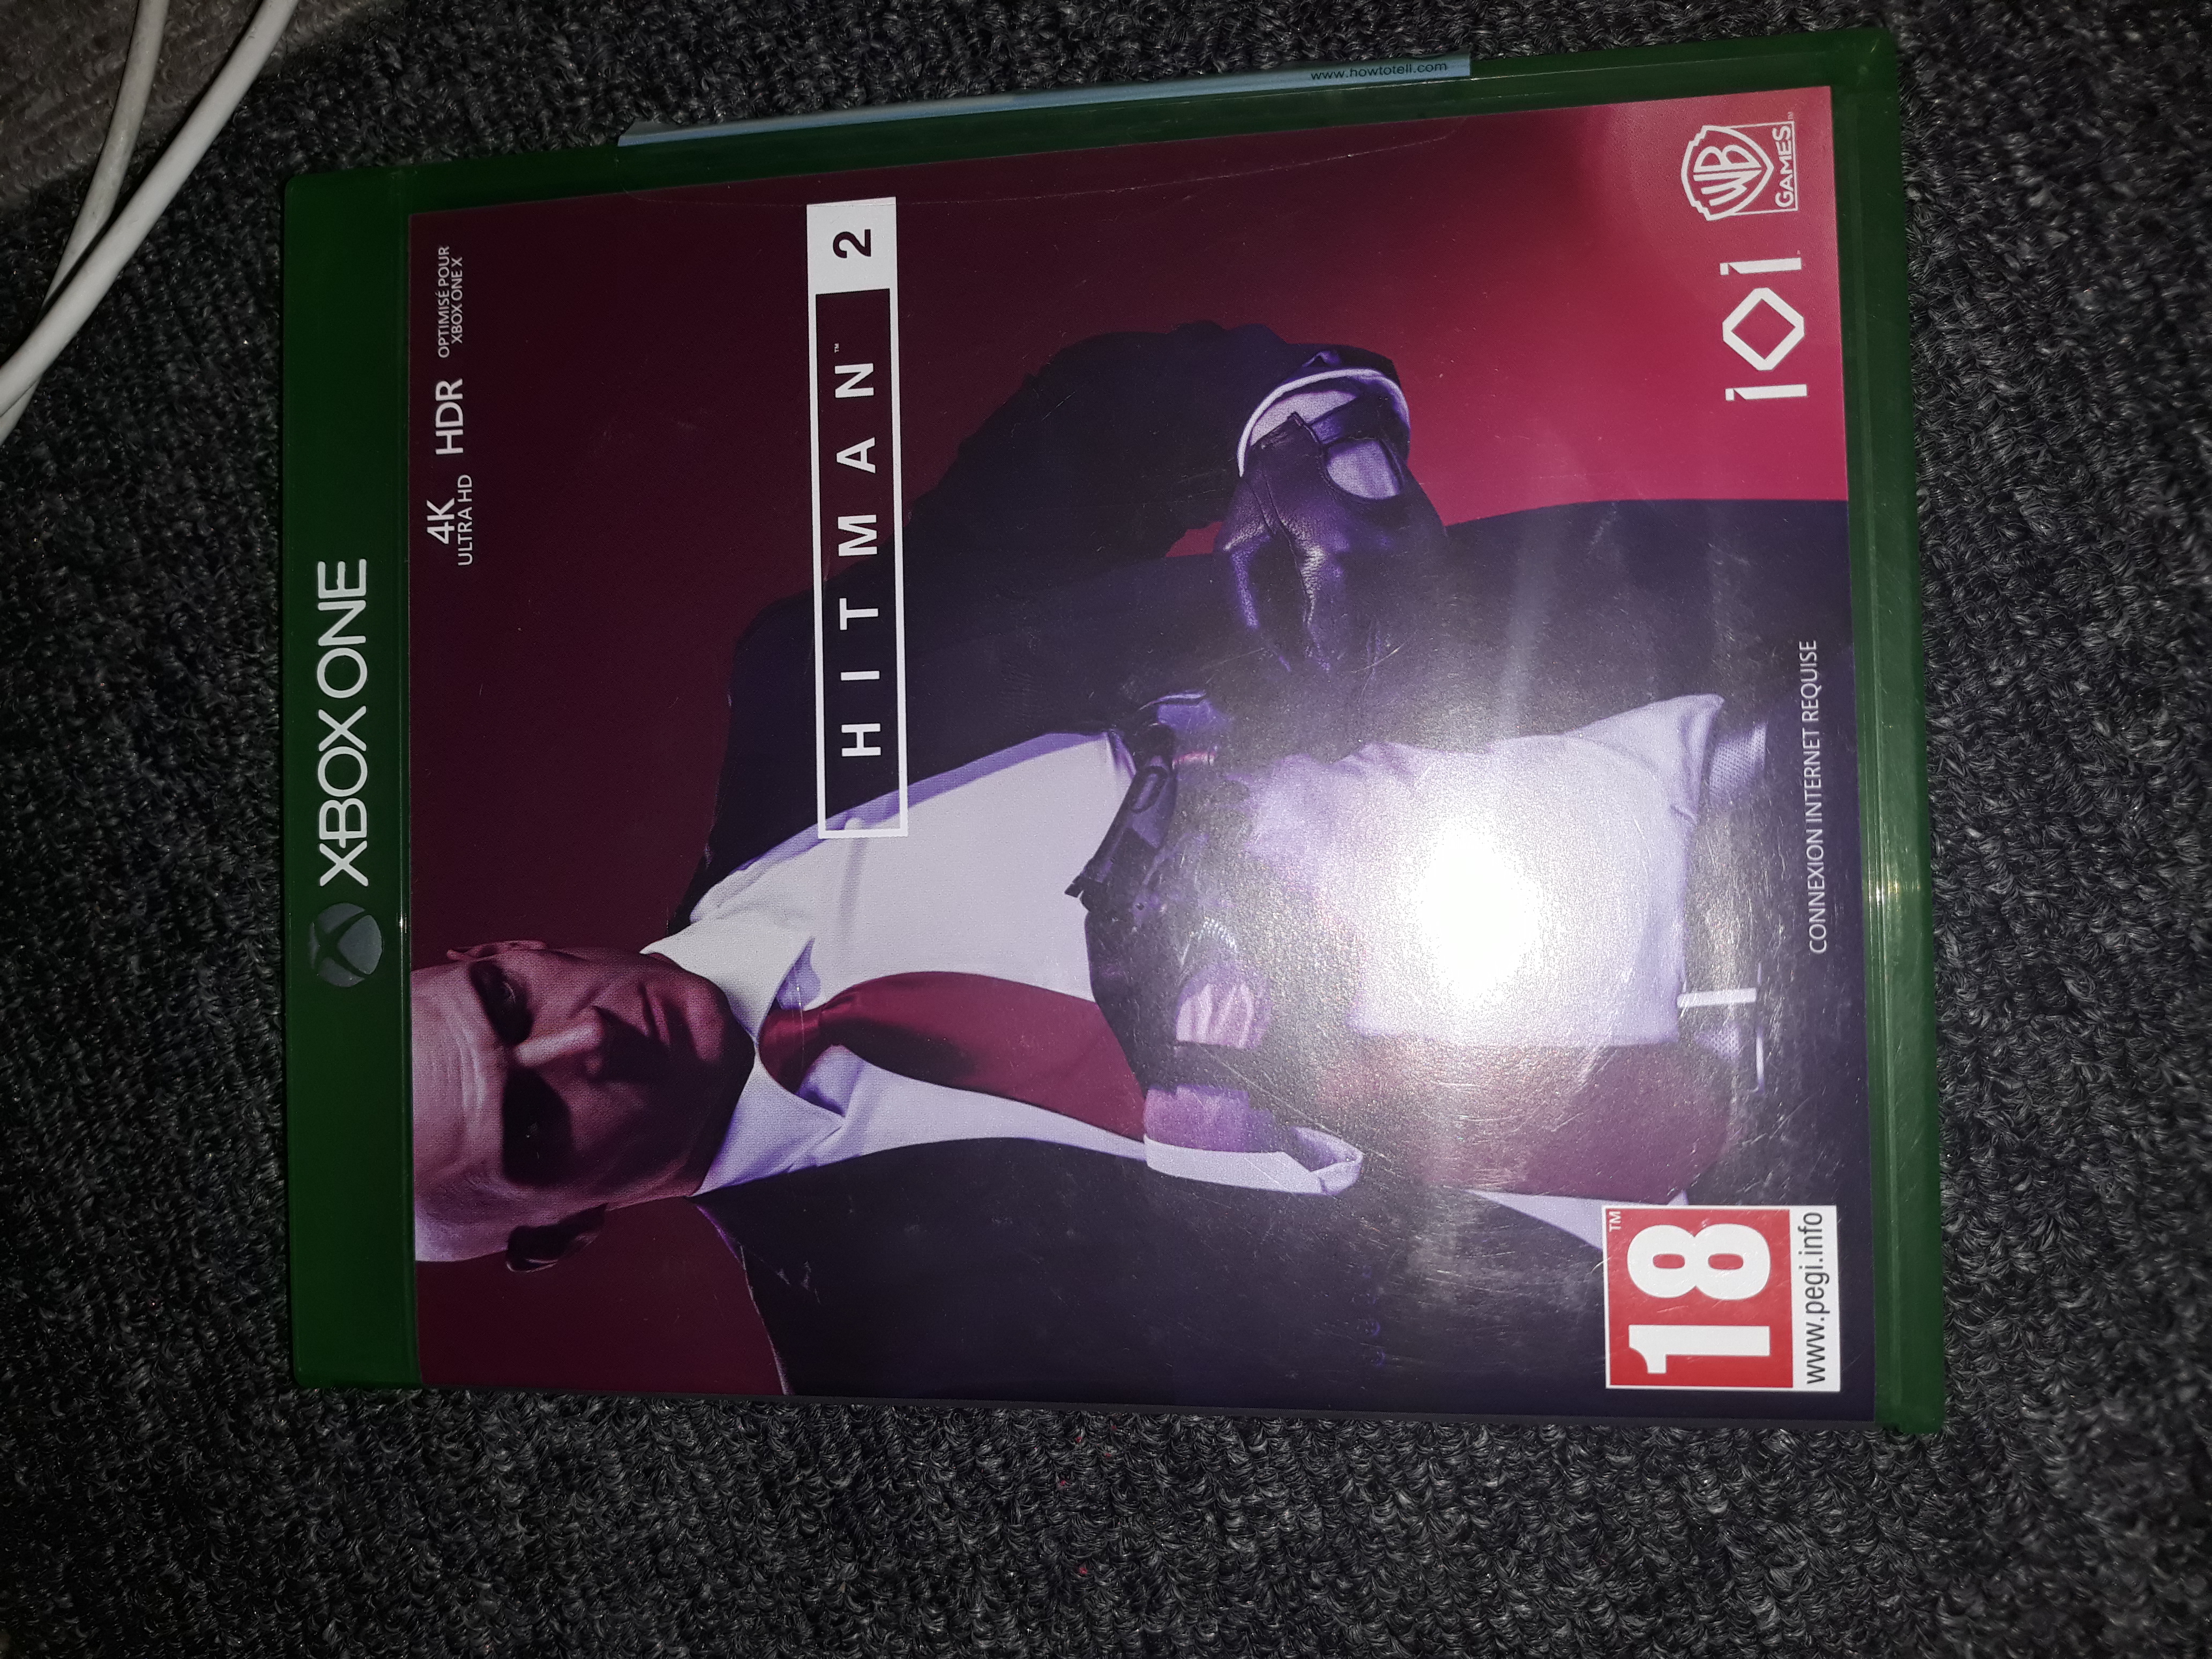 Cd hitman 2 xbox one Vends cd hitman 2 xbox one Envoyez moi un message whatsapp si interesse